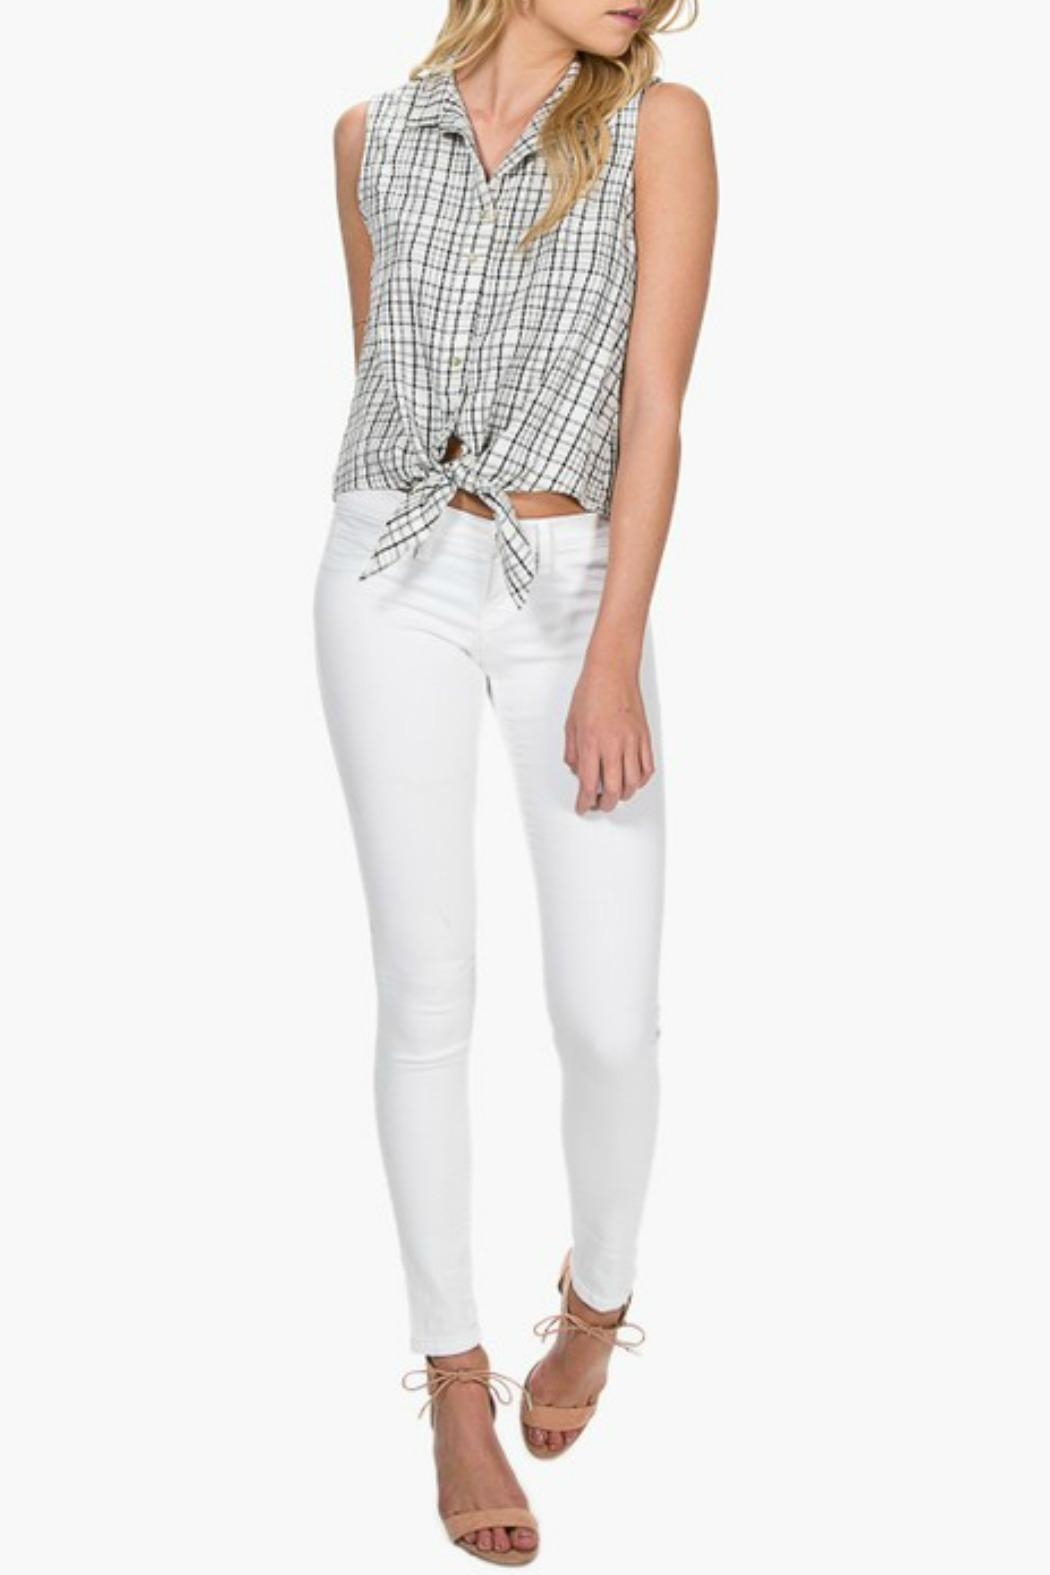 Everly Plaid Front-Tie Top - Side Cropped Image